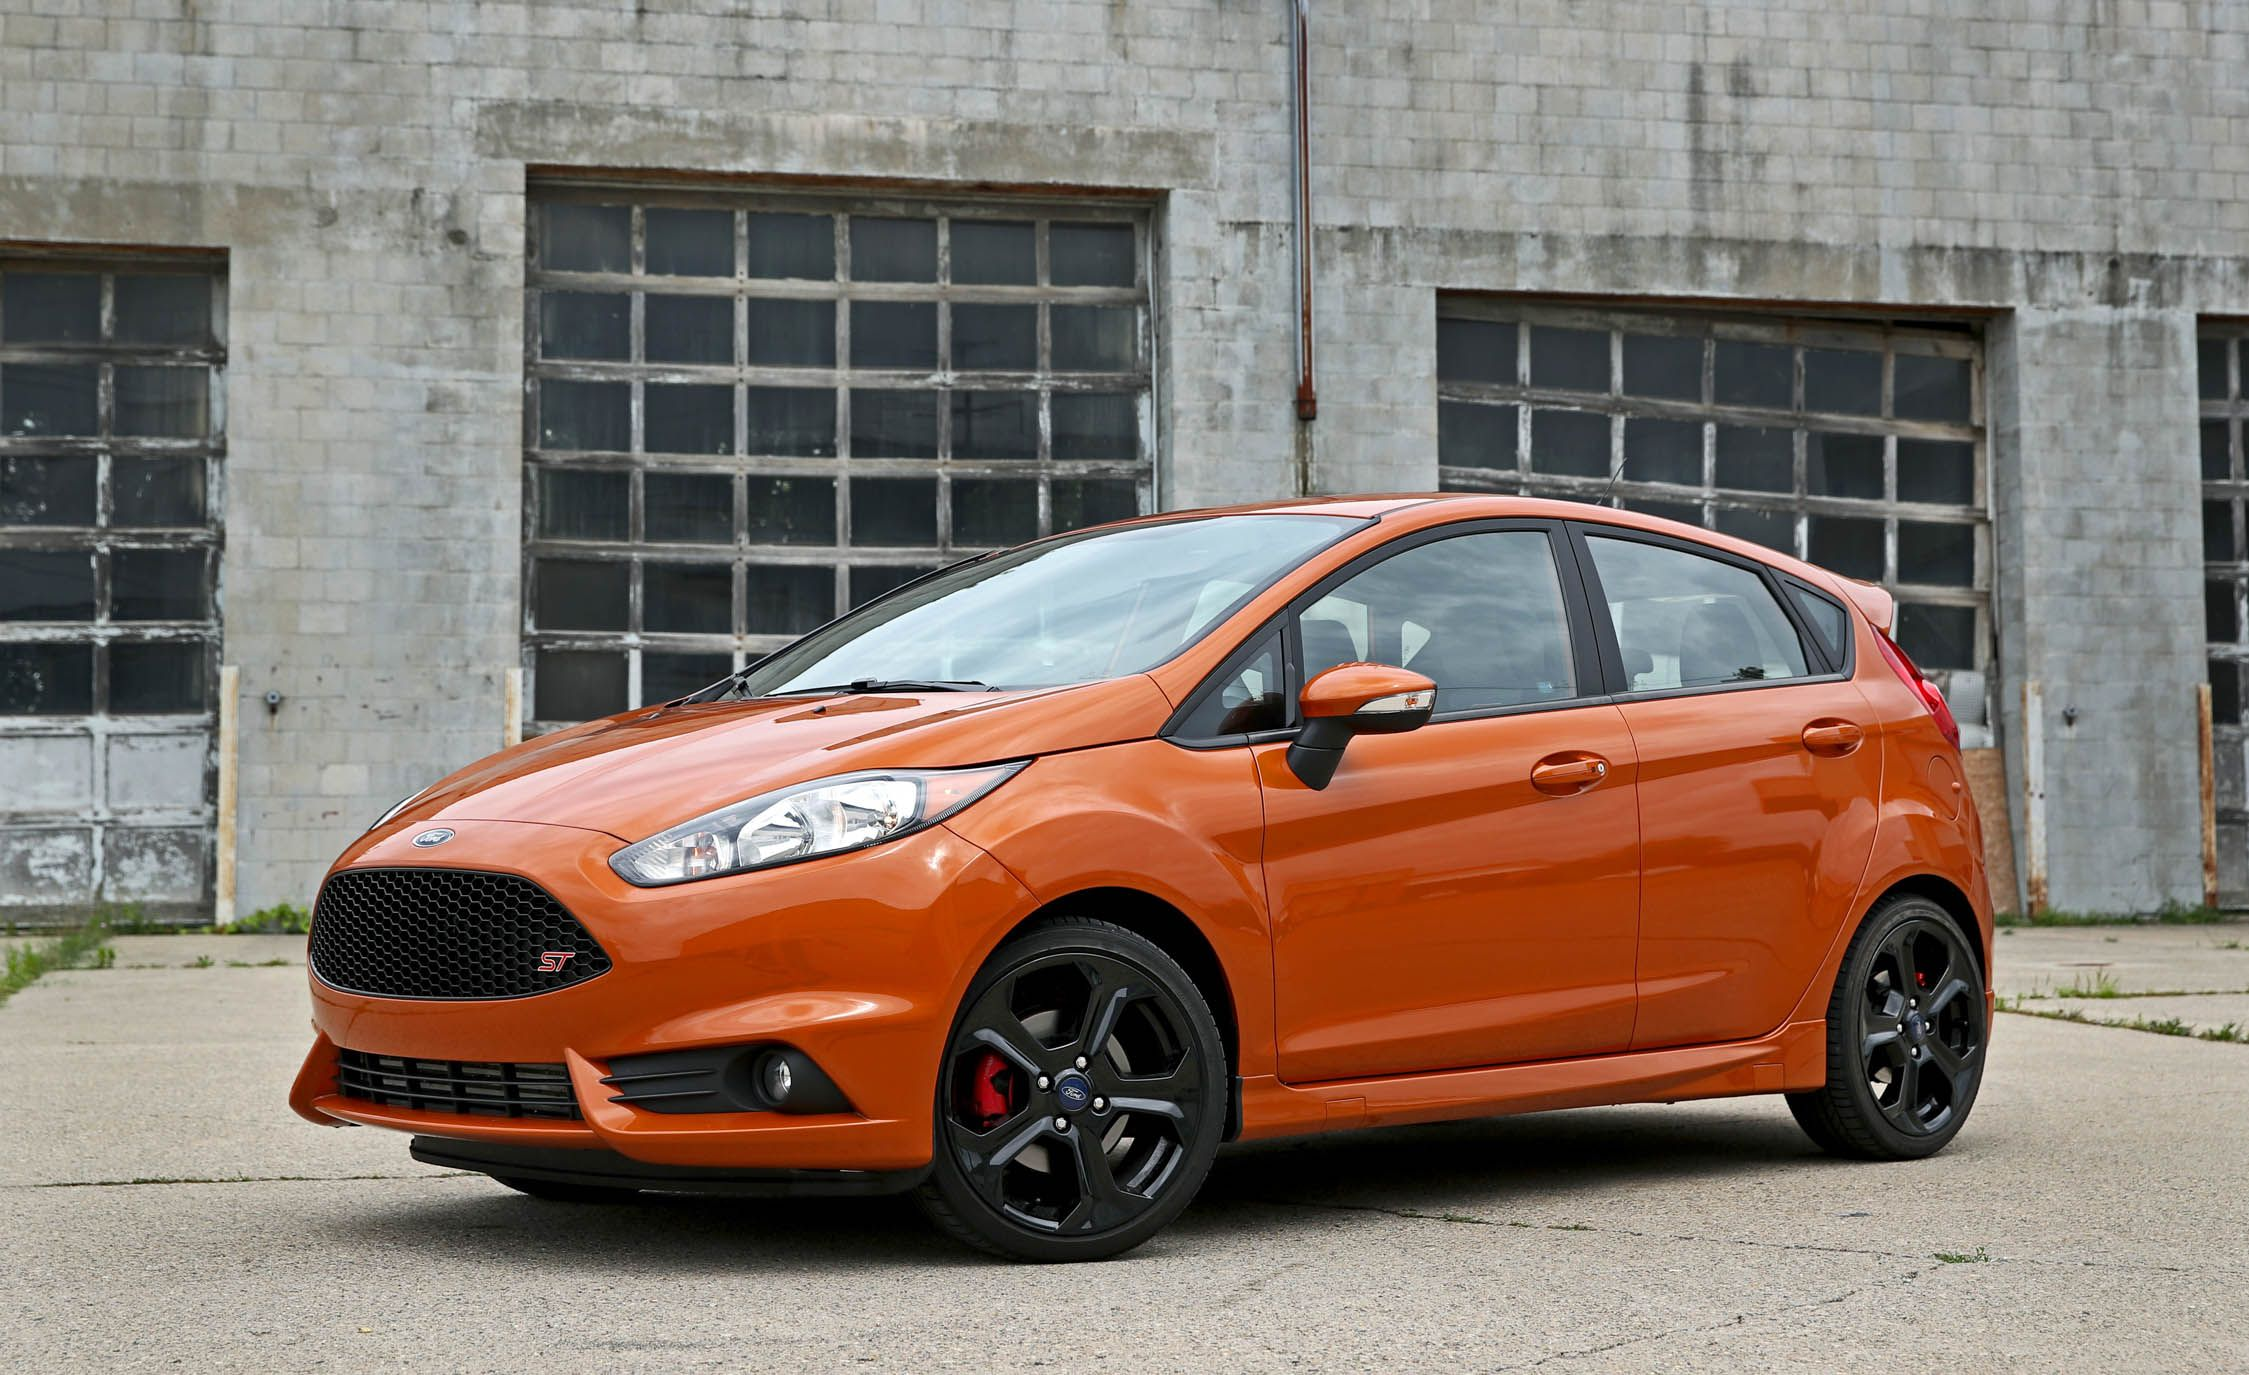 Exterior & 2017 Ford Fiesta ST | In-Depth Model Review | Car and Driver markmcfarlin.com